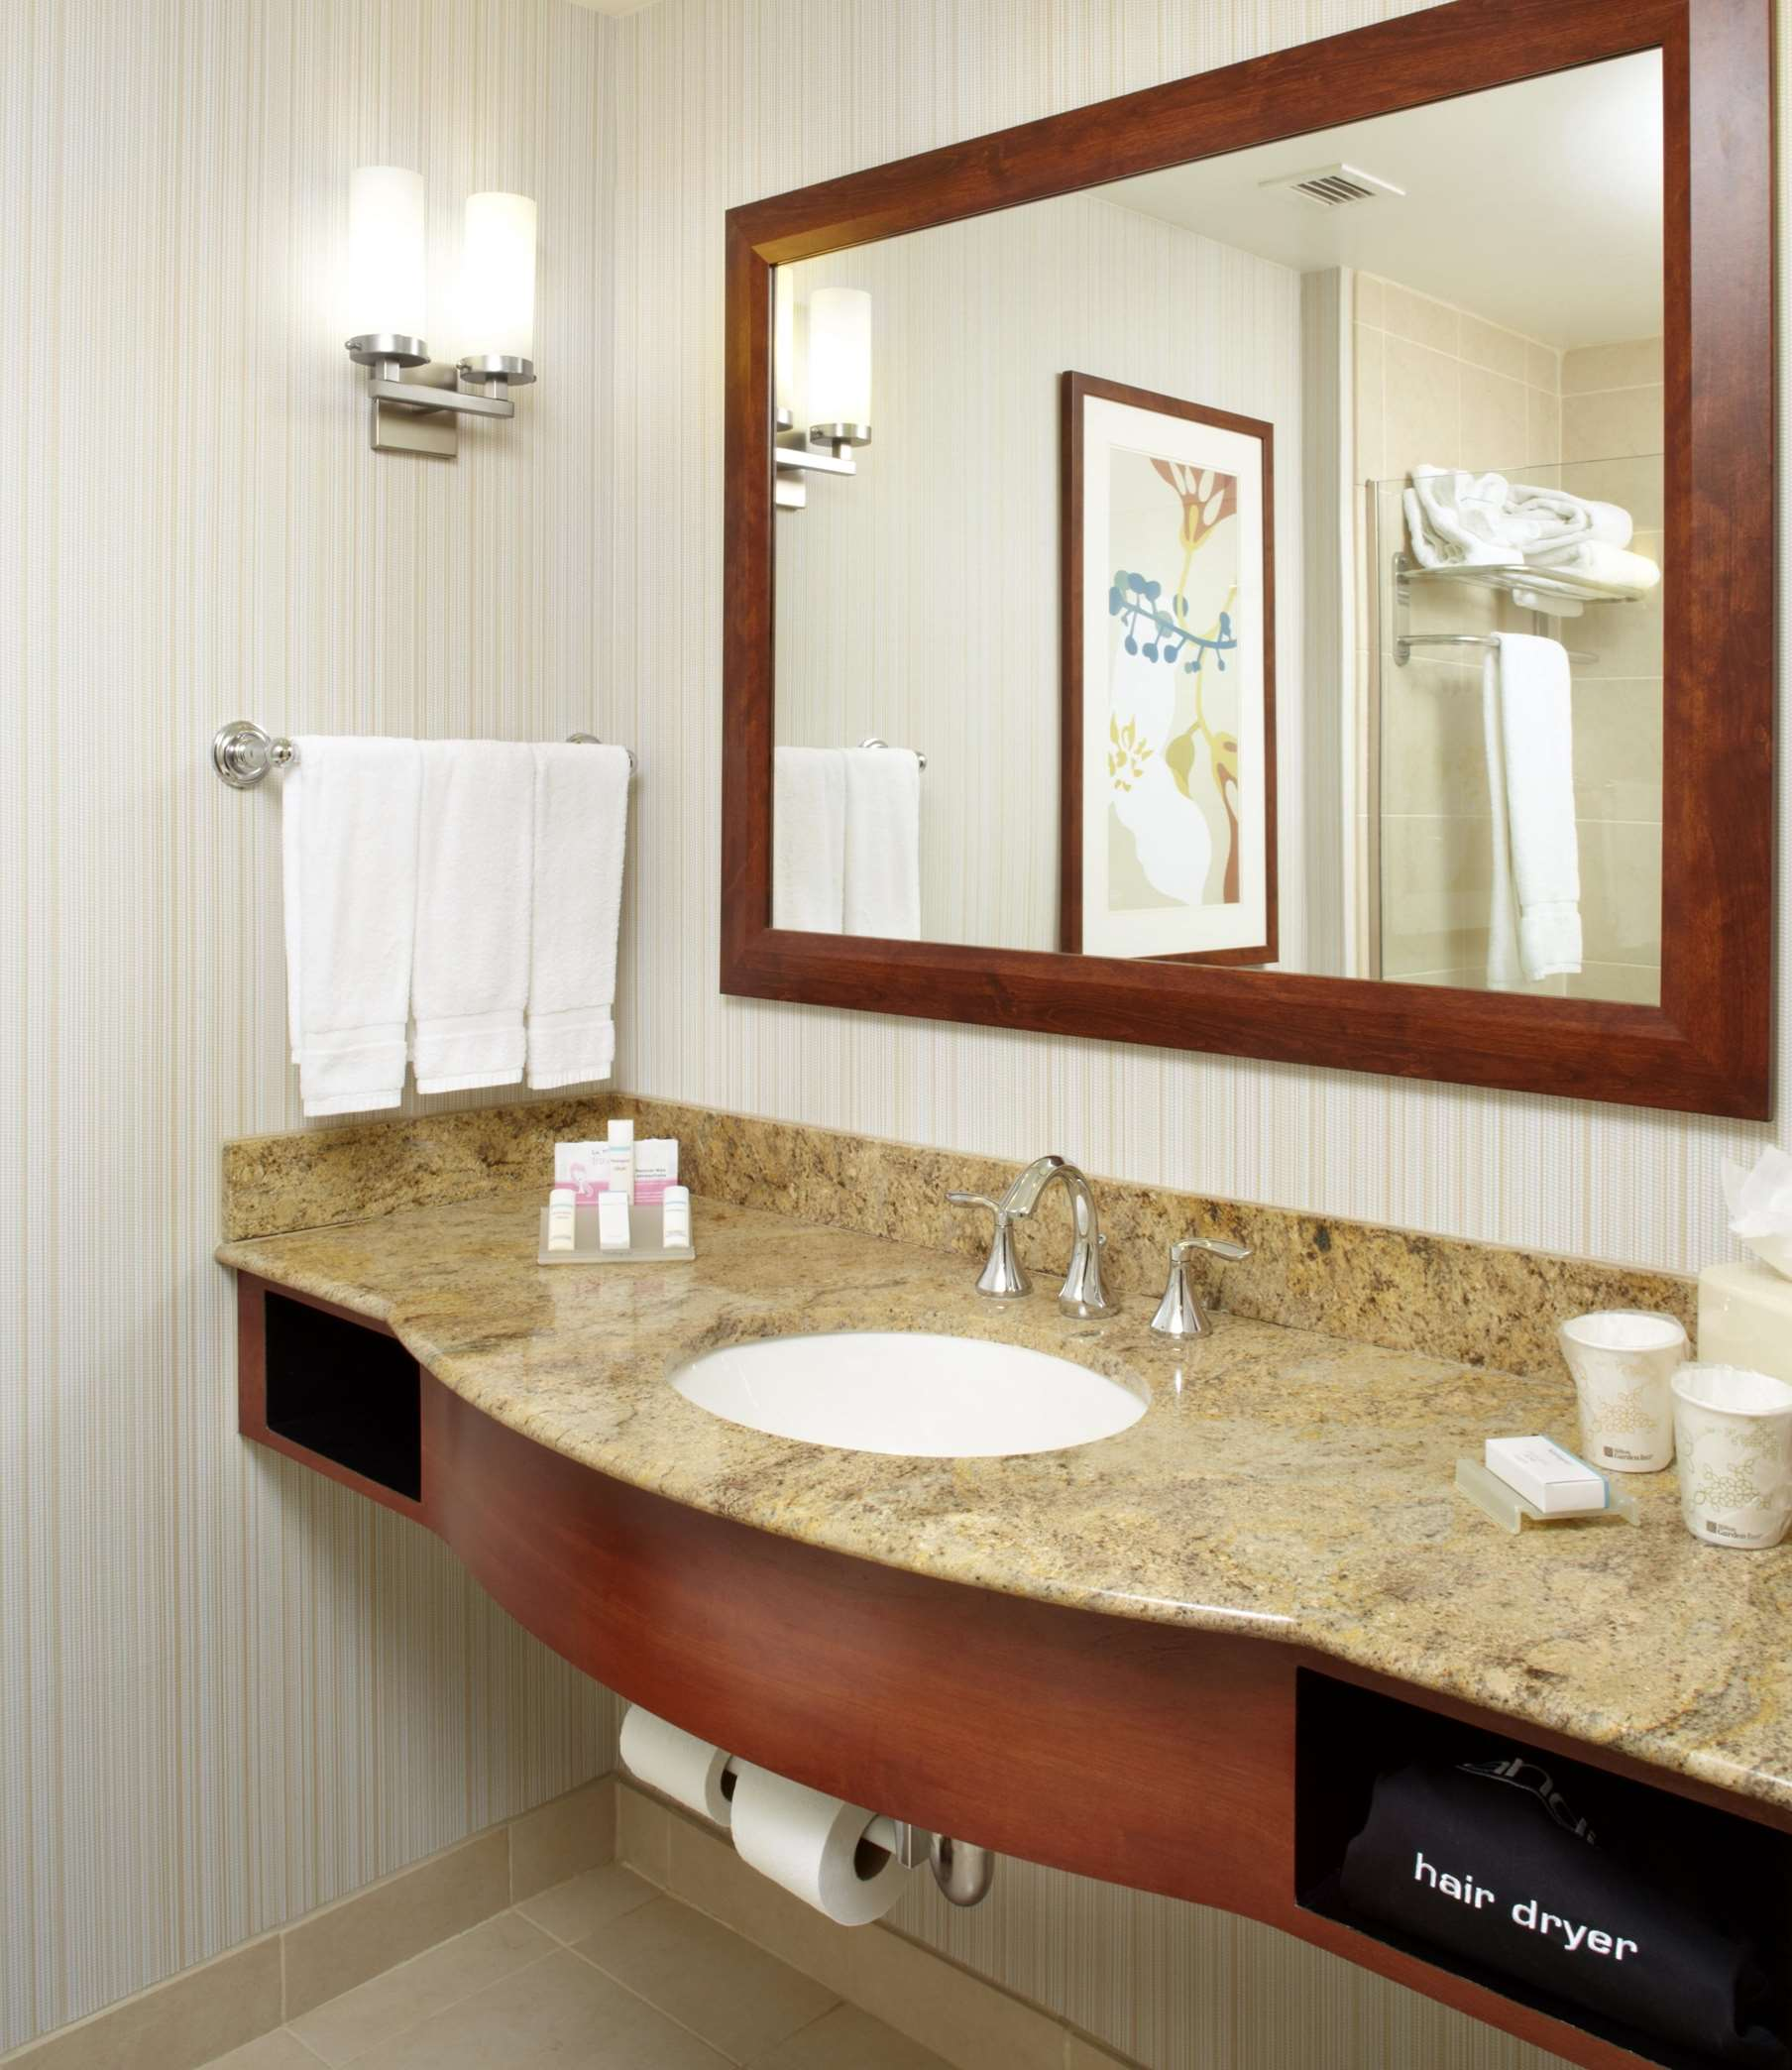 Hilton Garden Inn Dallas/Arlington image 38